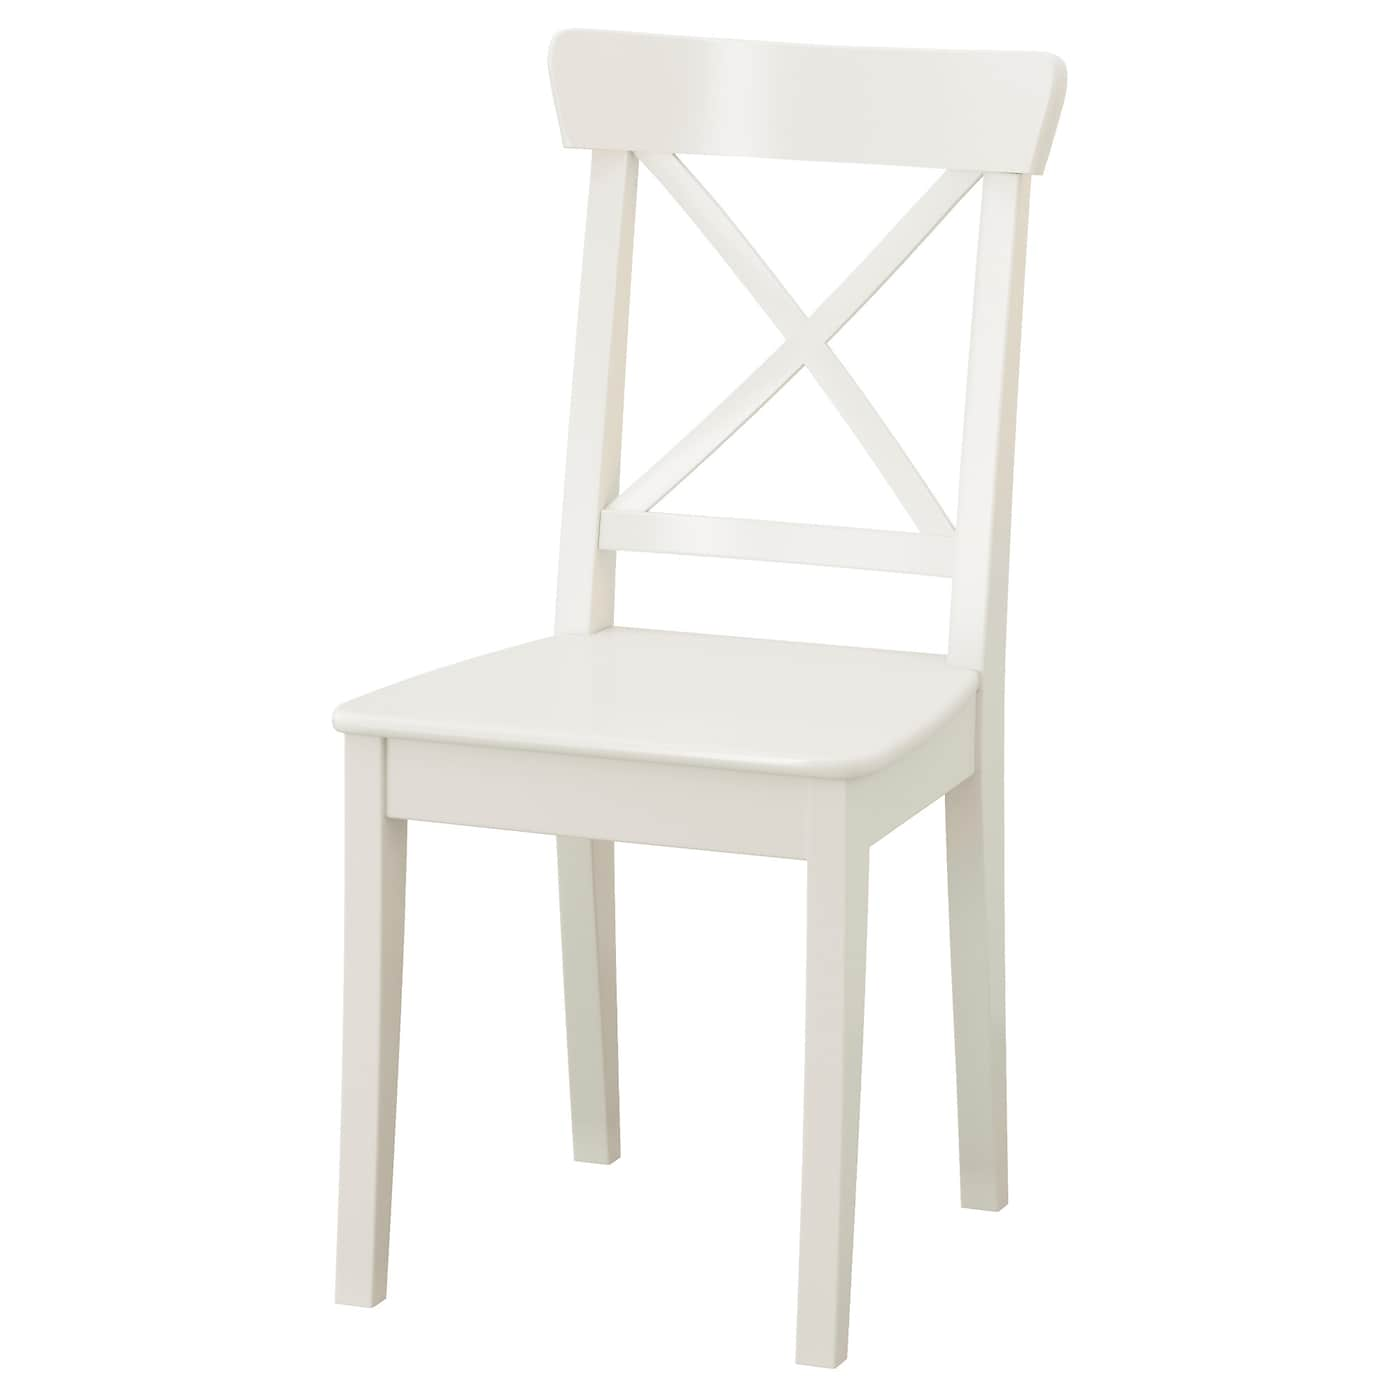 INGOLF Chair White IKEA : ingolf chair white0454095pe602593s5 from www.ikea.com size 2000 x 2000 jpeg 116kB